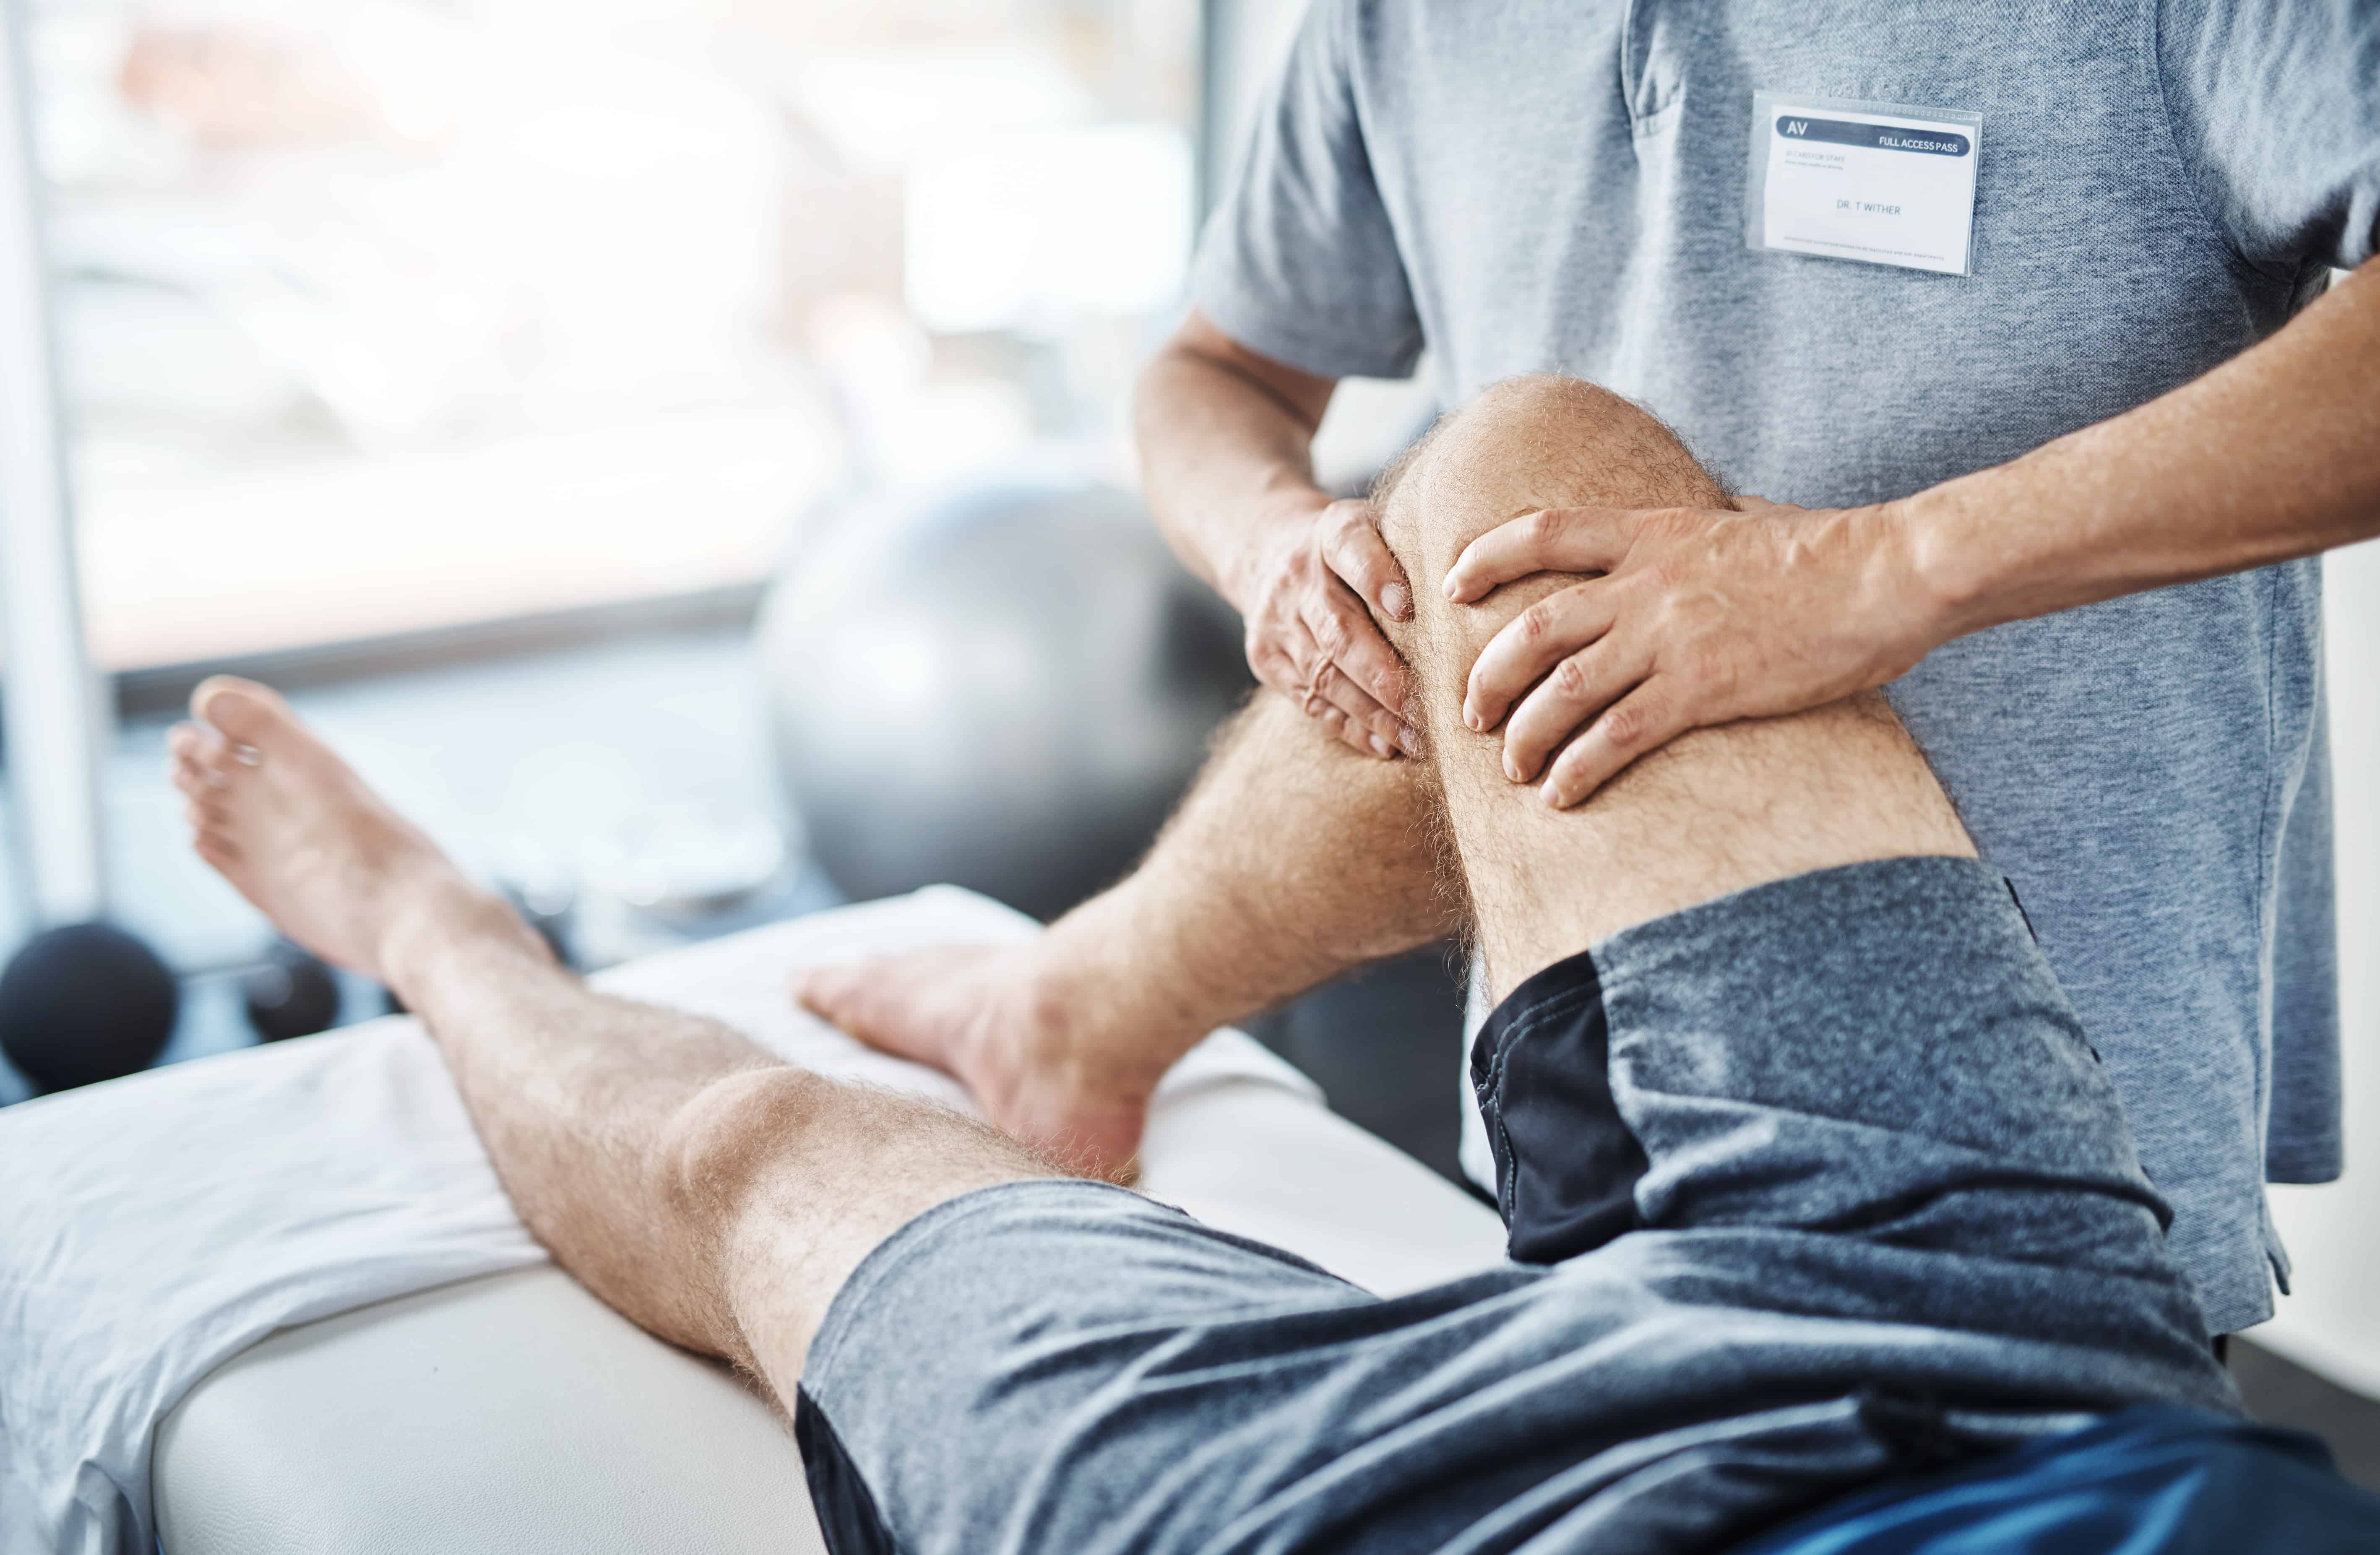 We'll sort out these sprains and strains